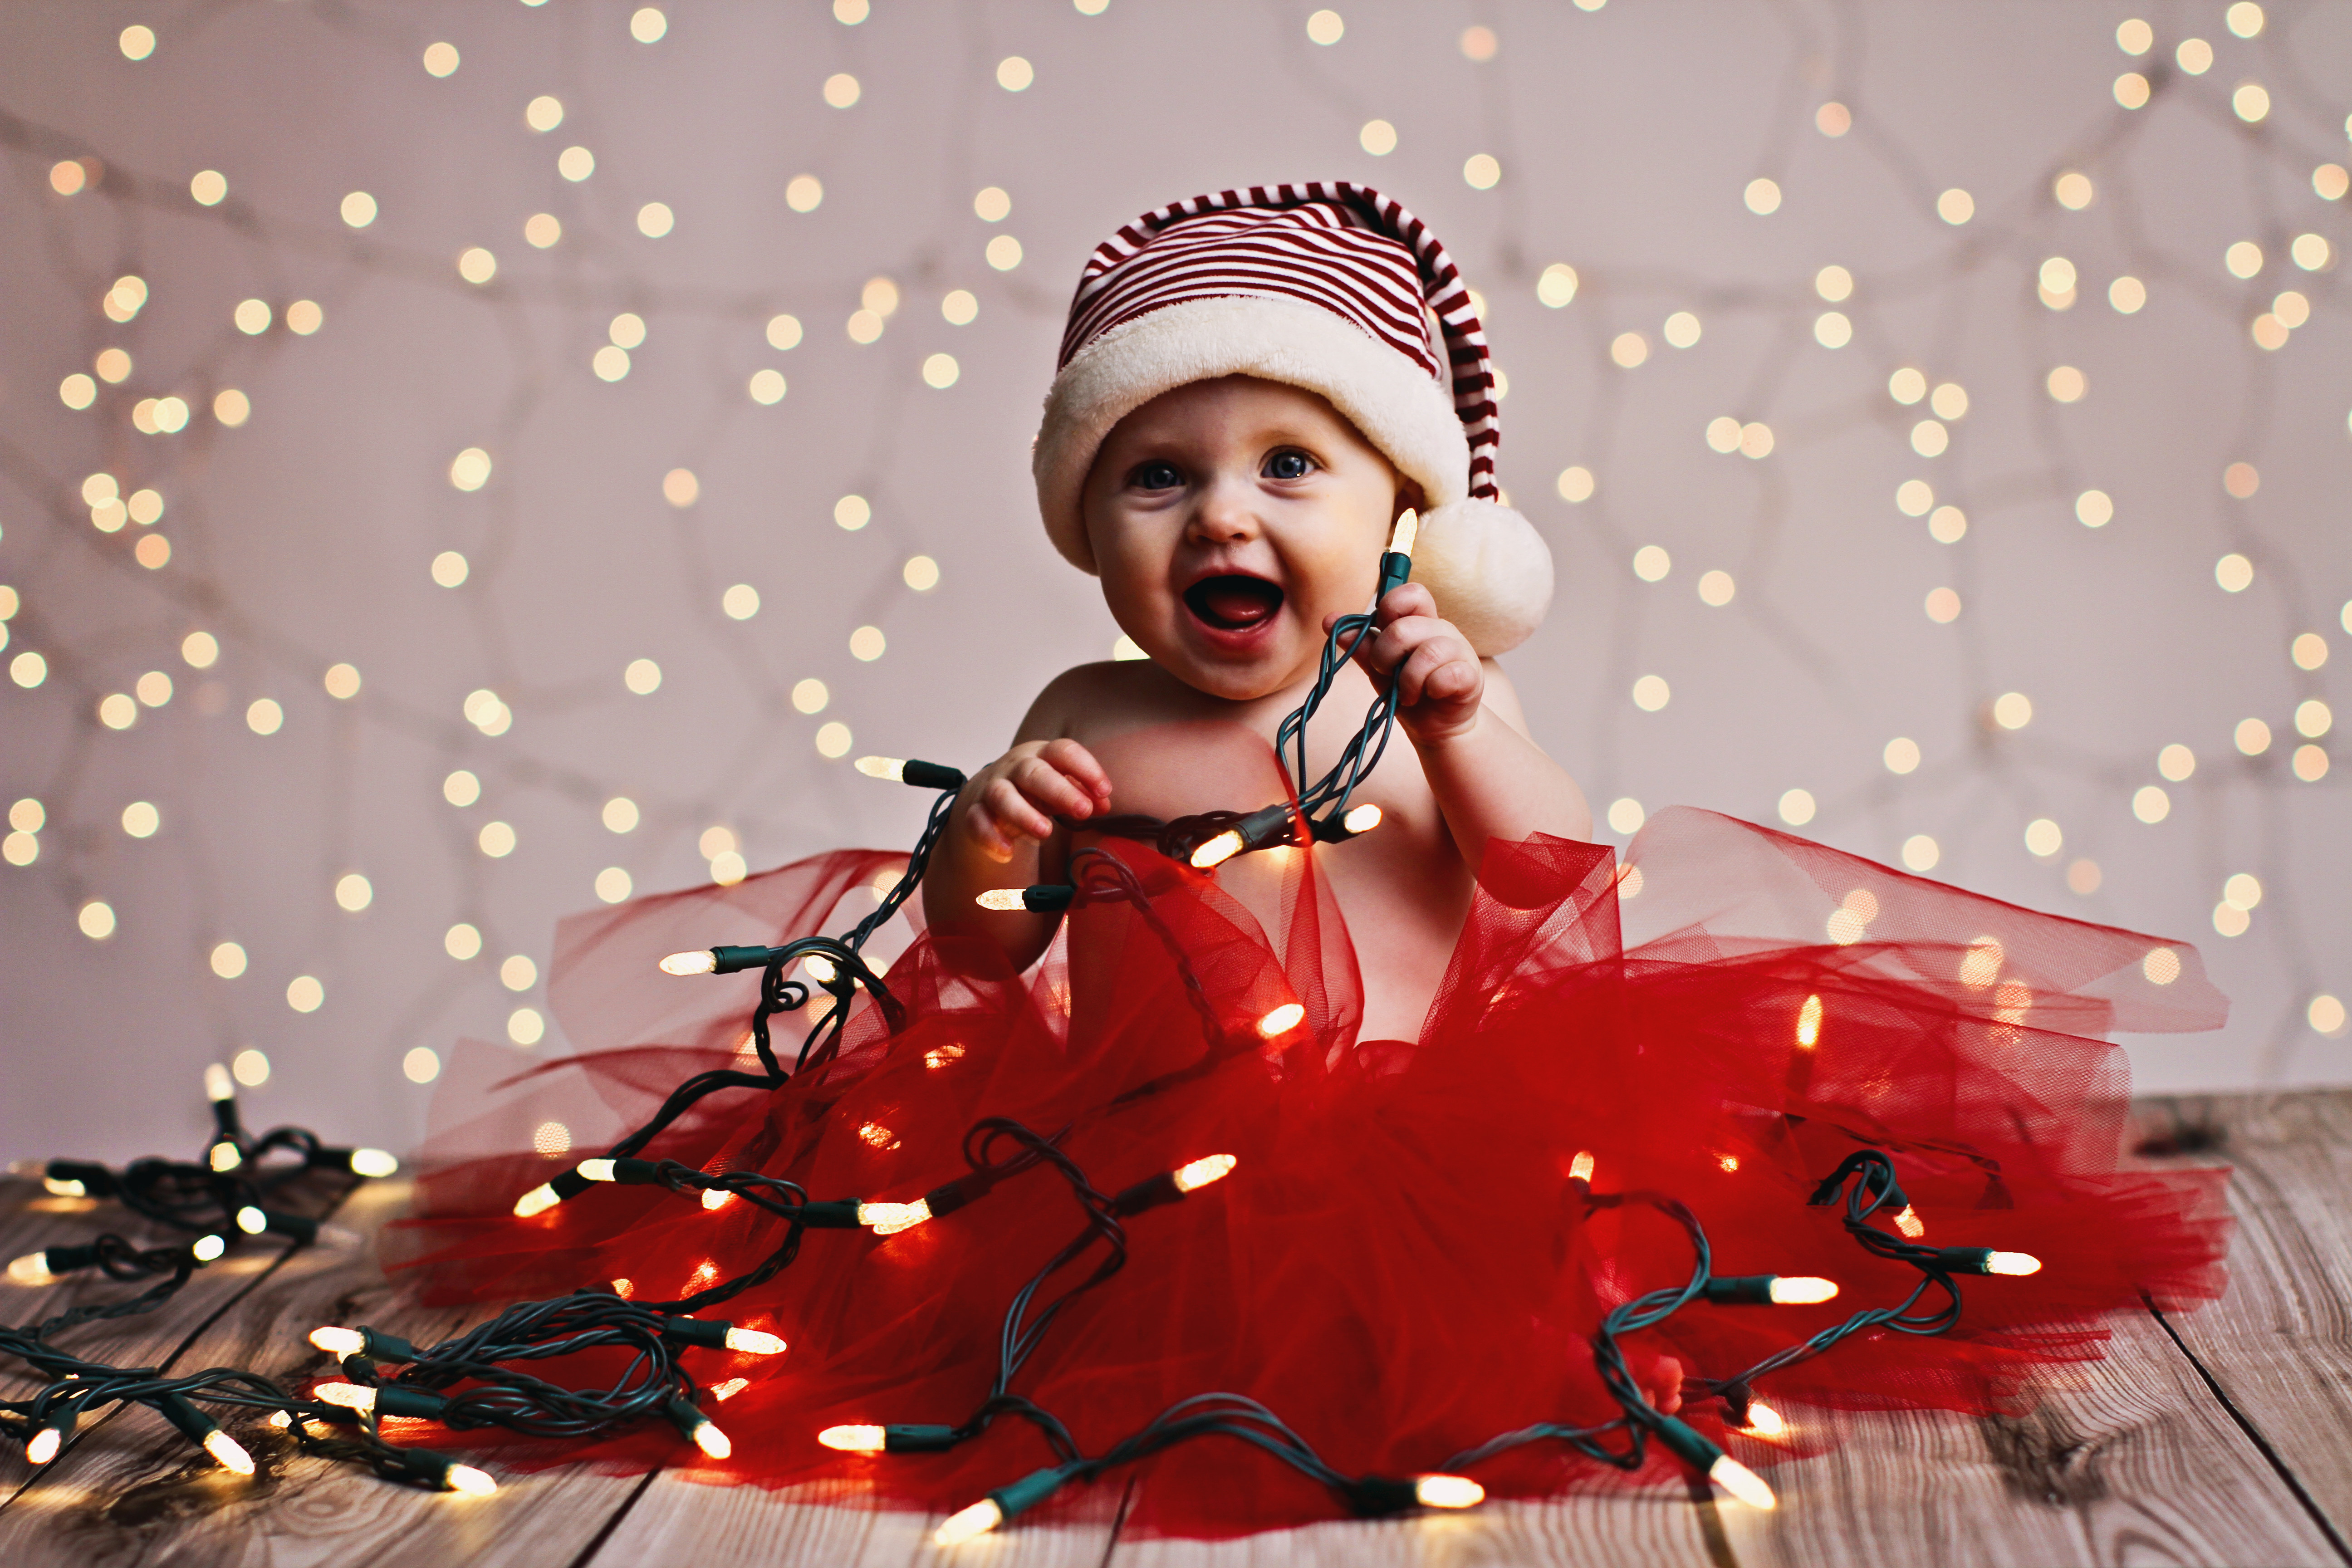 Best ideas about DIY Christmas Photography . Save or Pin Haddison's Christmas shoot Now.